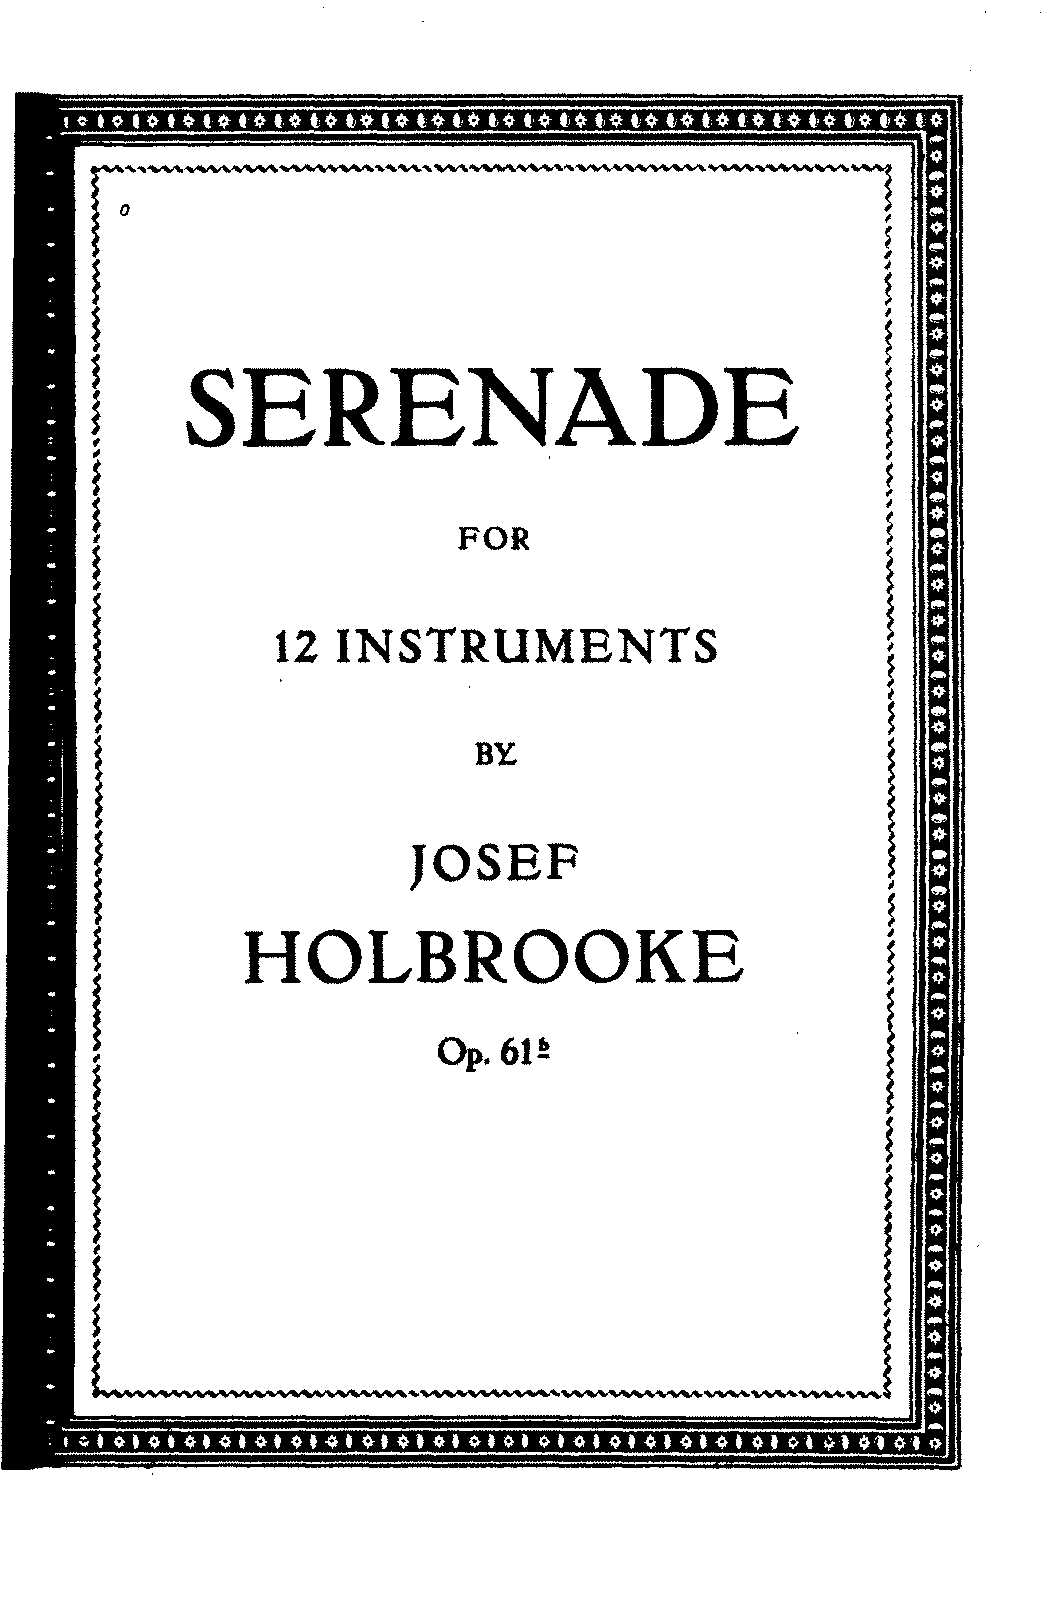 PMLP58238-Holbrooke - Serenade for 12 Instruments Op 61b.pdf